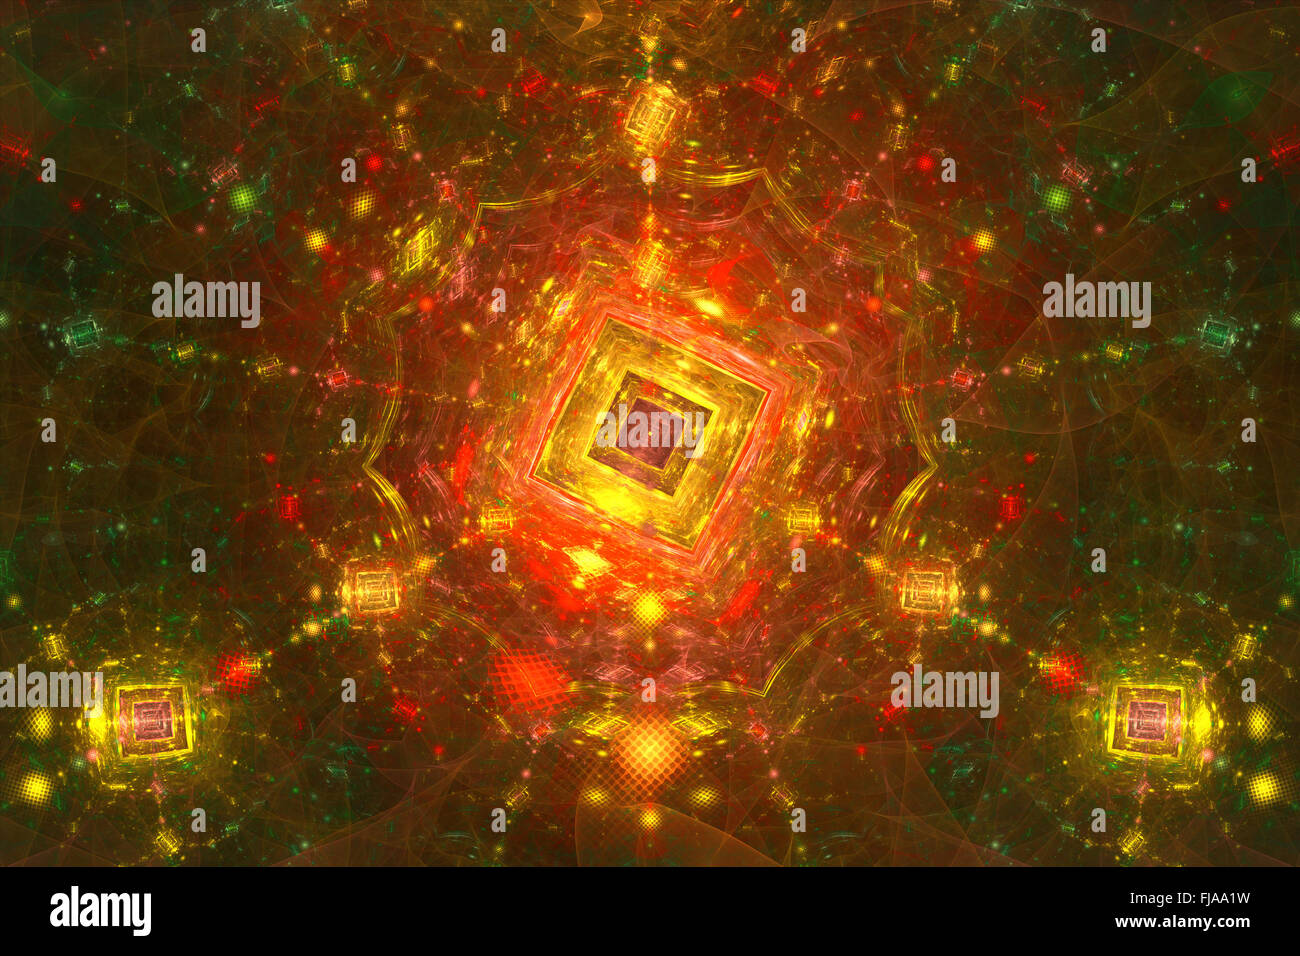 Connceted world of fractals, abstract background - Stock Image